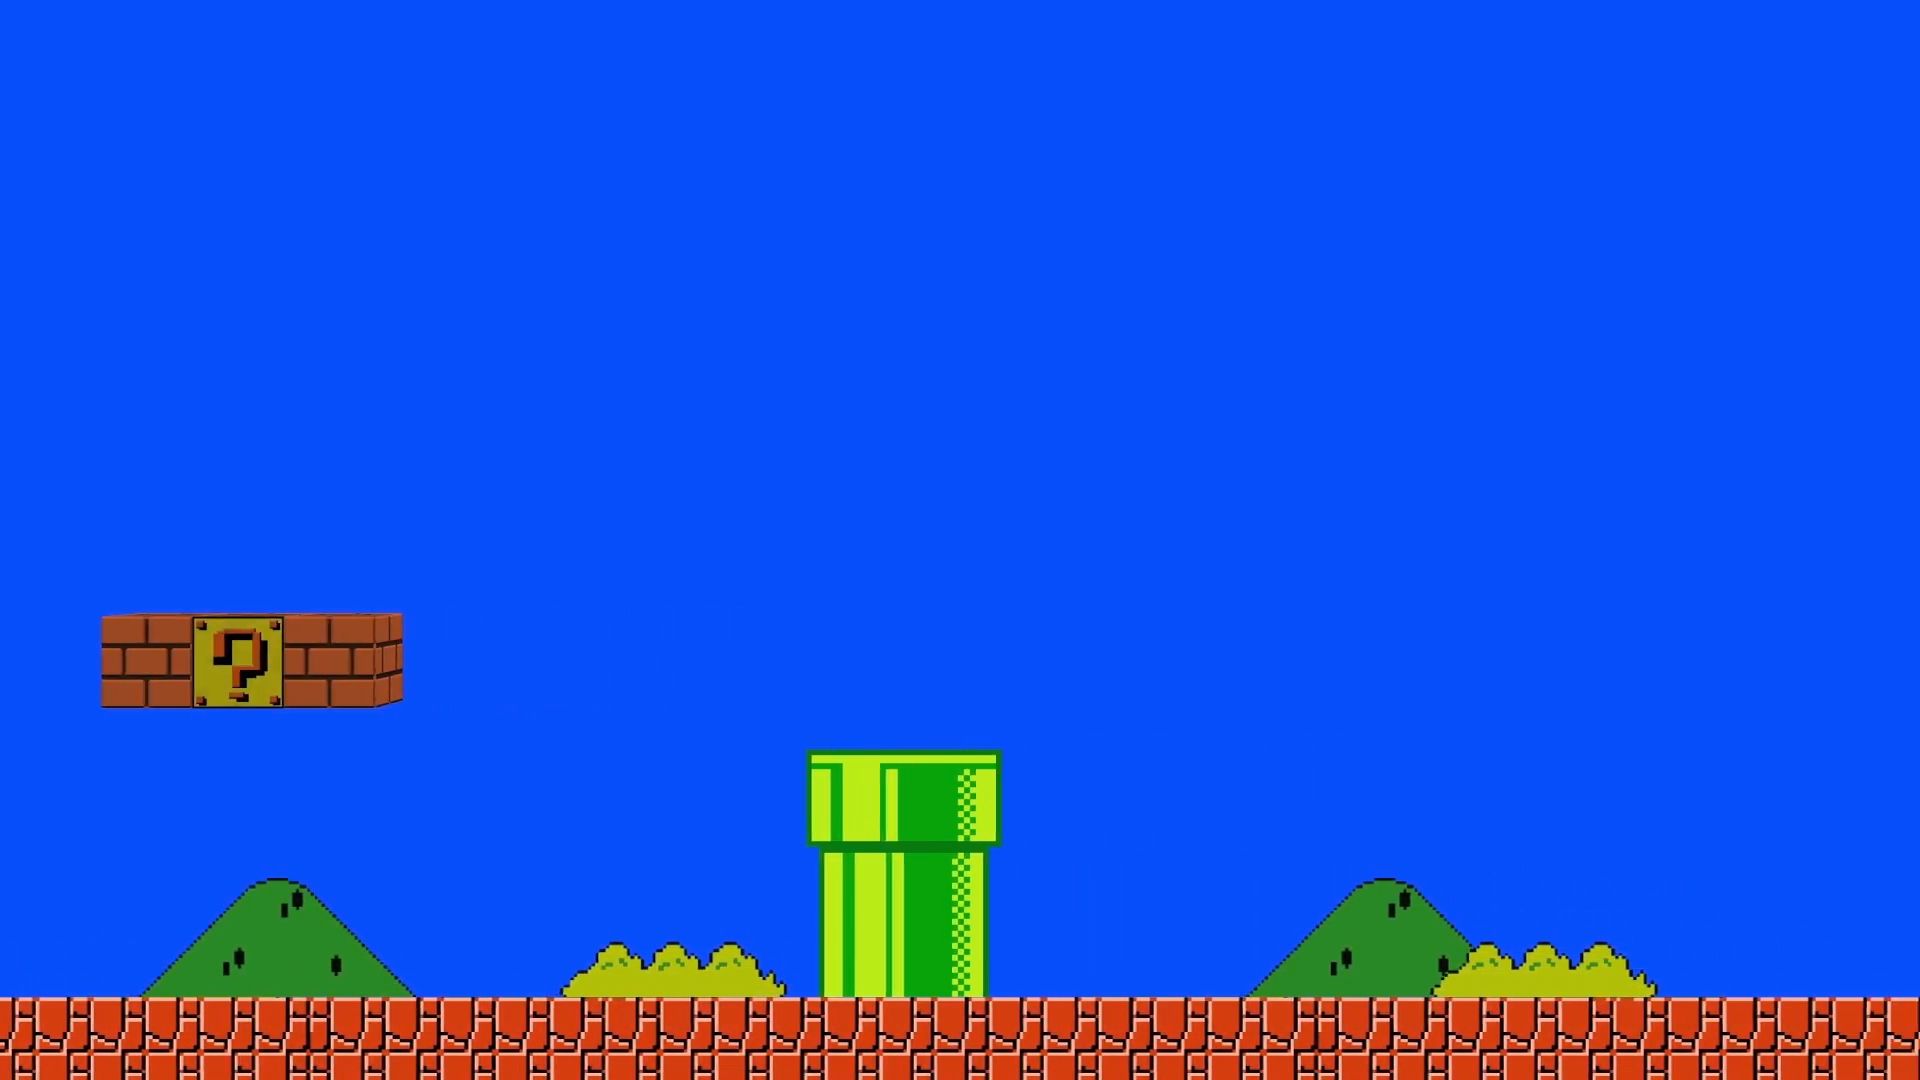 super mario bros platform game on a green screen background motion